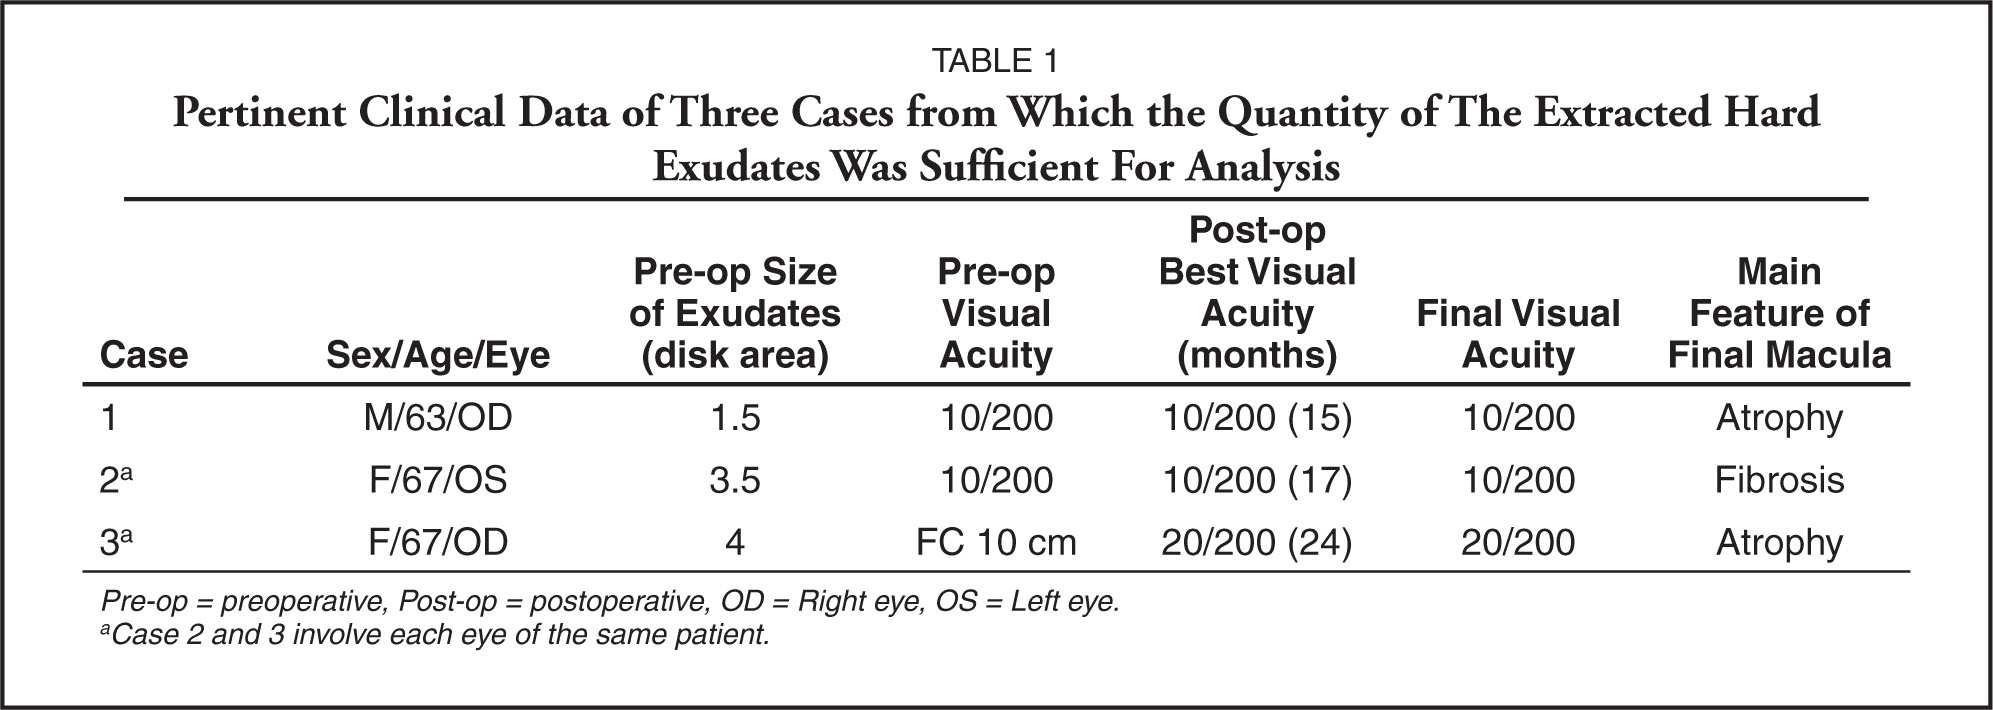 Pertinent Clinical Data of Three Cases from Which the Quantity of the Extracted Hard Exudates Was Sufficient for Analysis